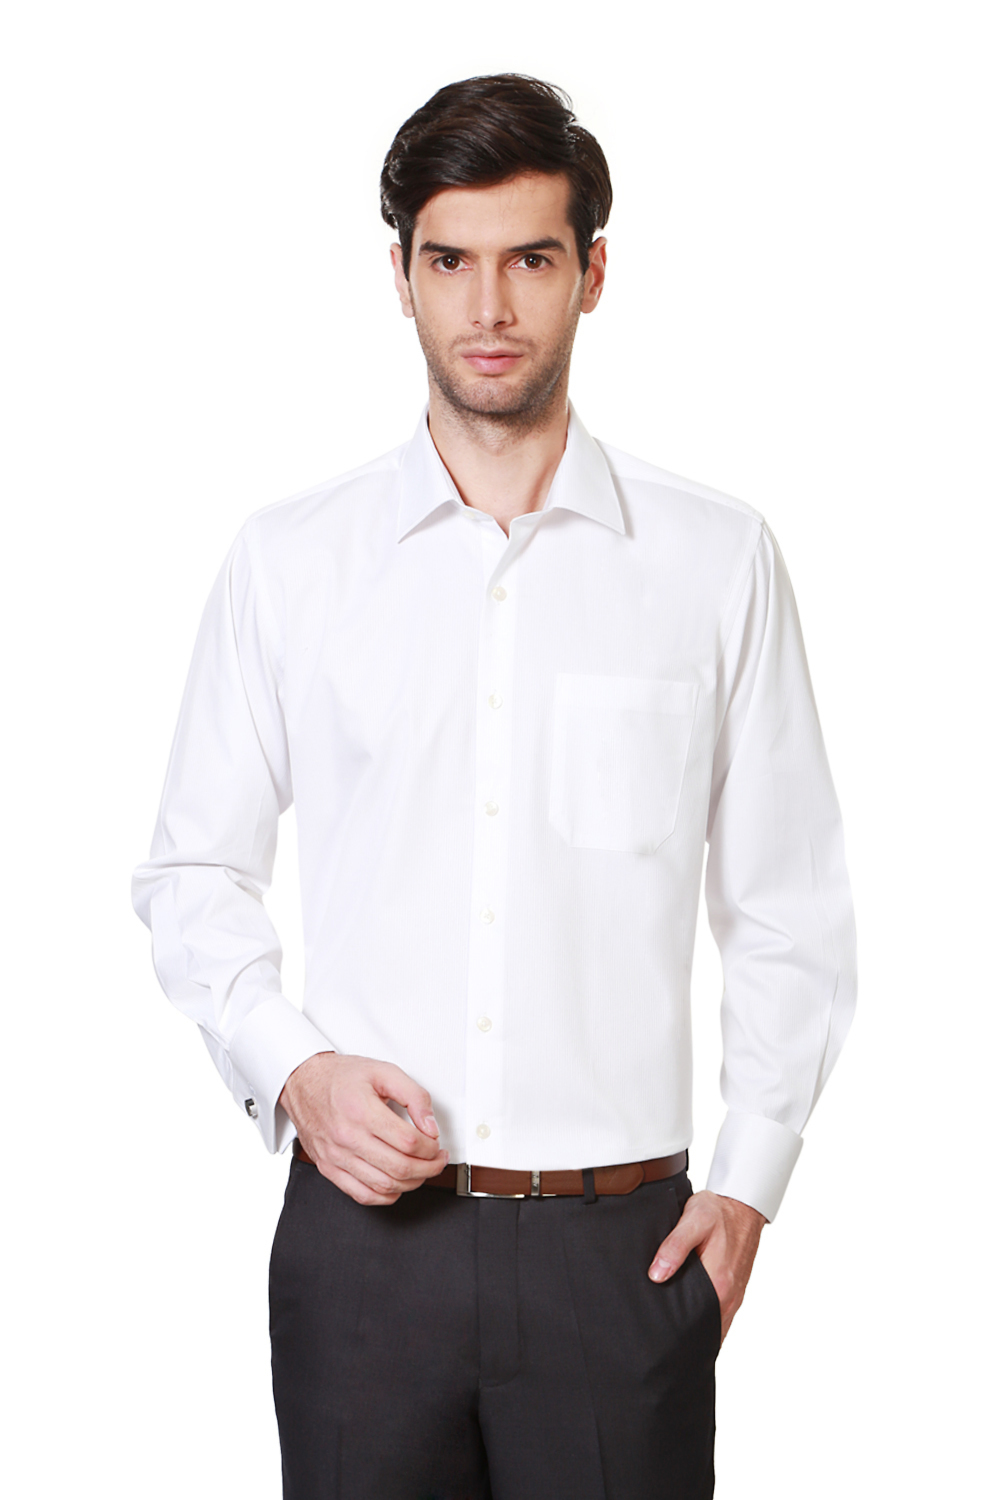 76e8971ffc02b3 Louis Philippe Shirts, Louis Philippe White Shirt for Men at Louisphilippe .com